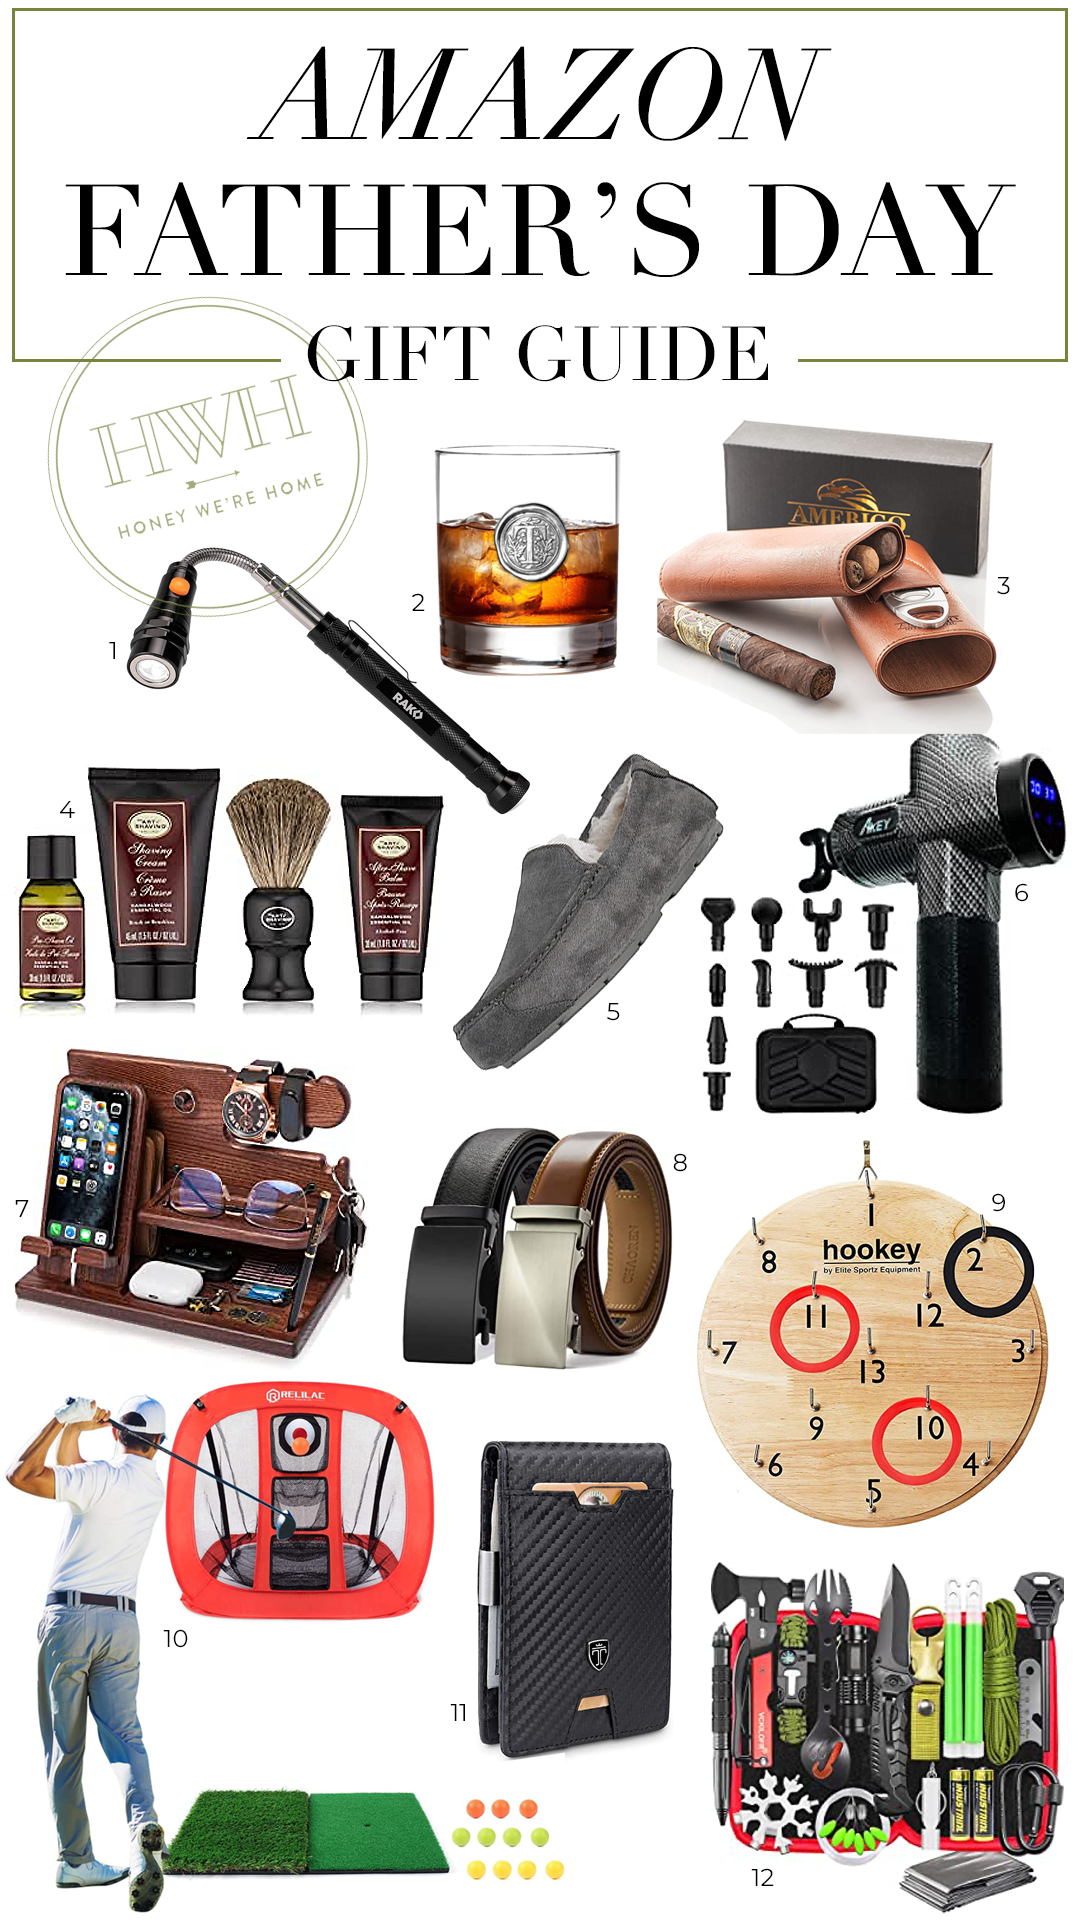 Father's Day Gift Guide   All on AMAZON